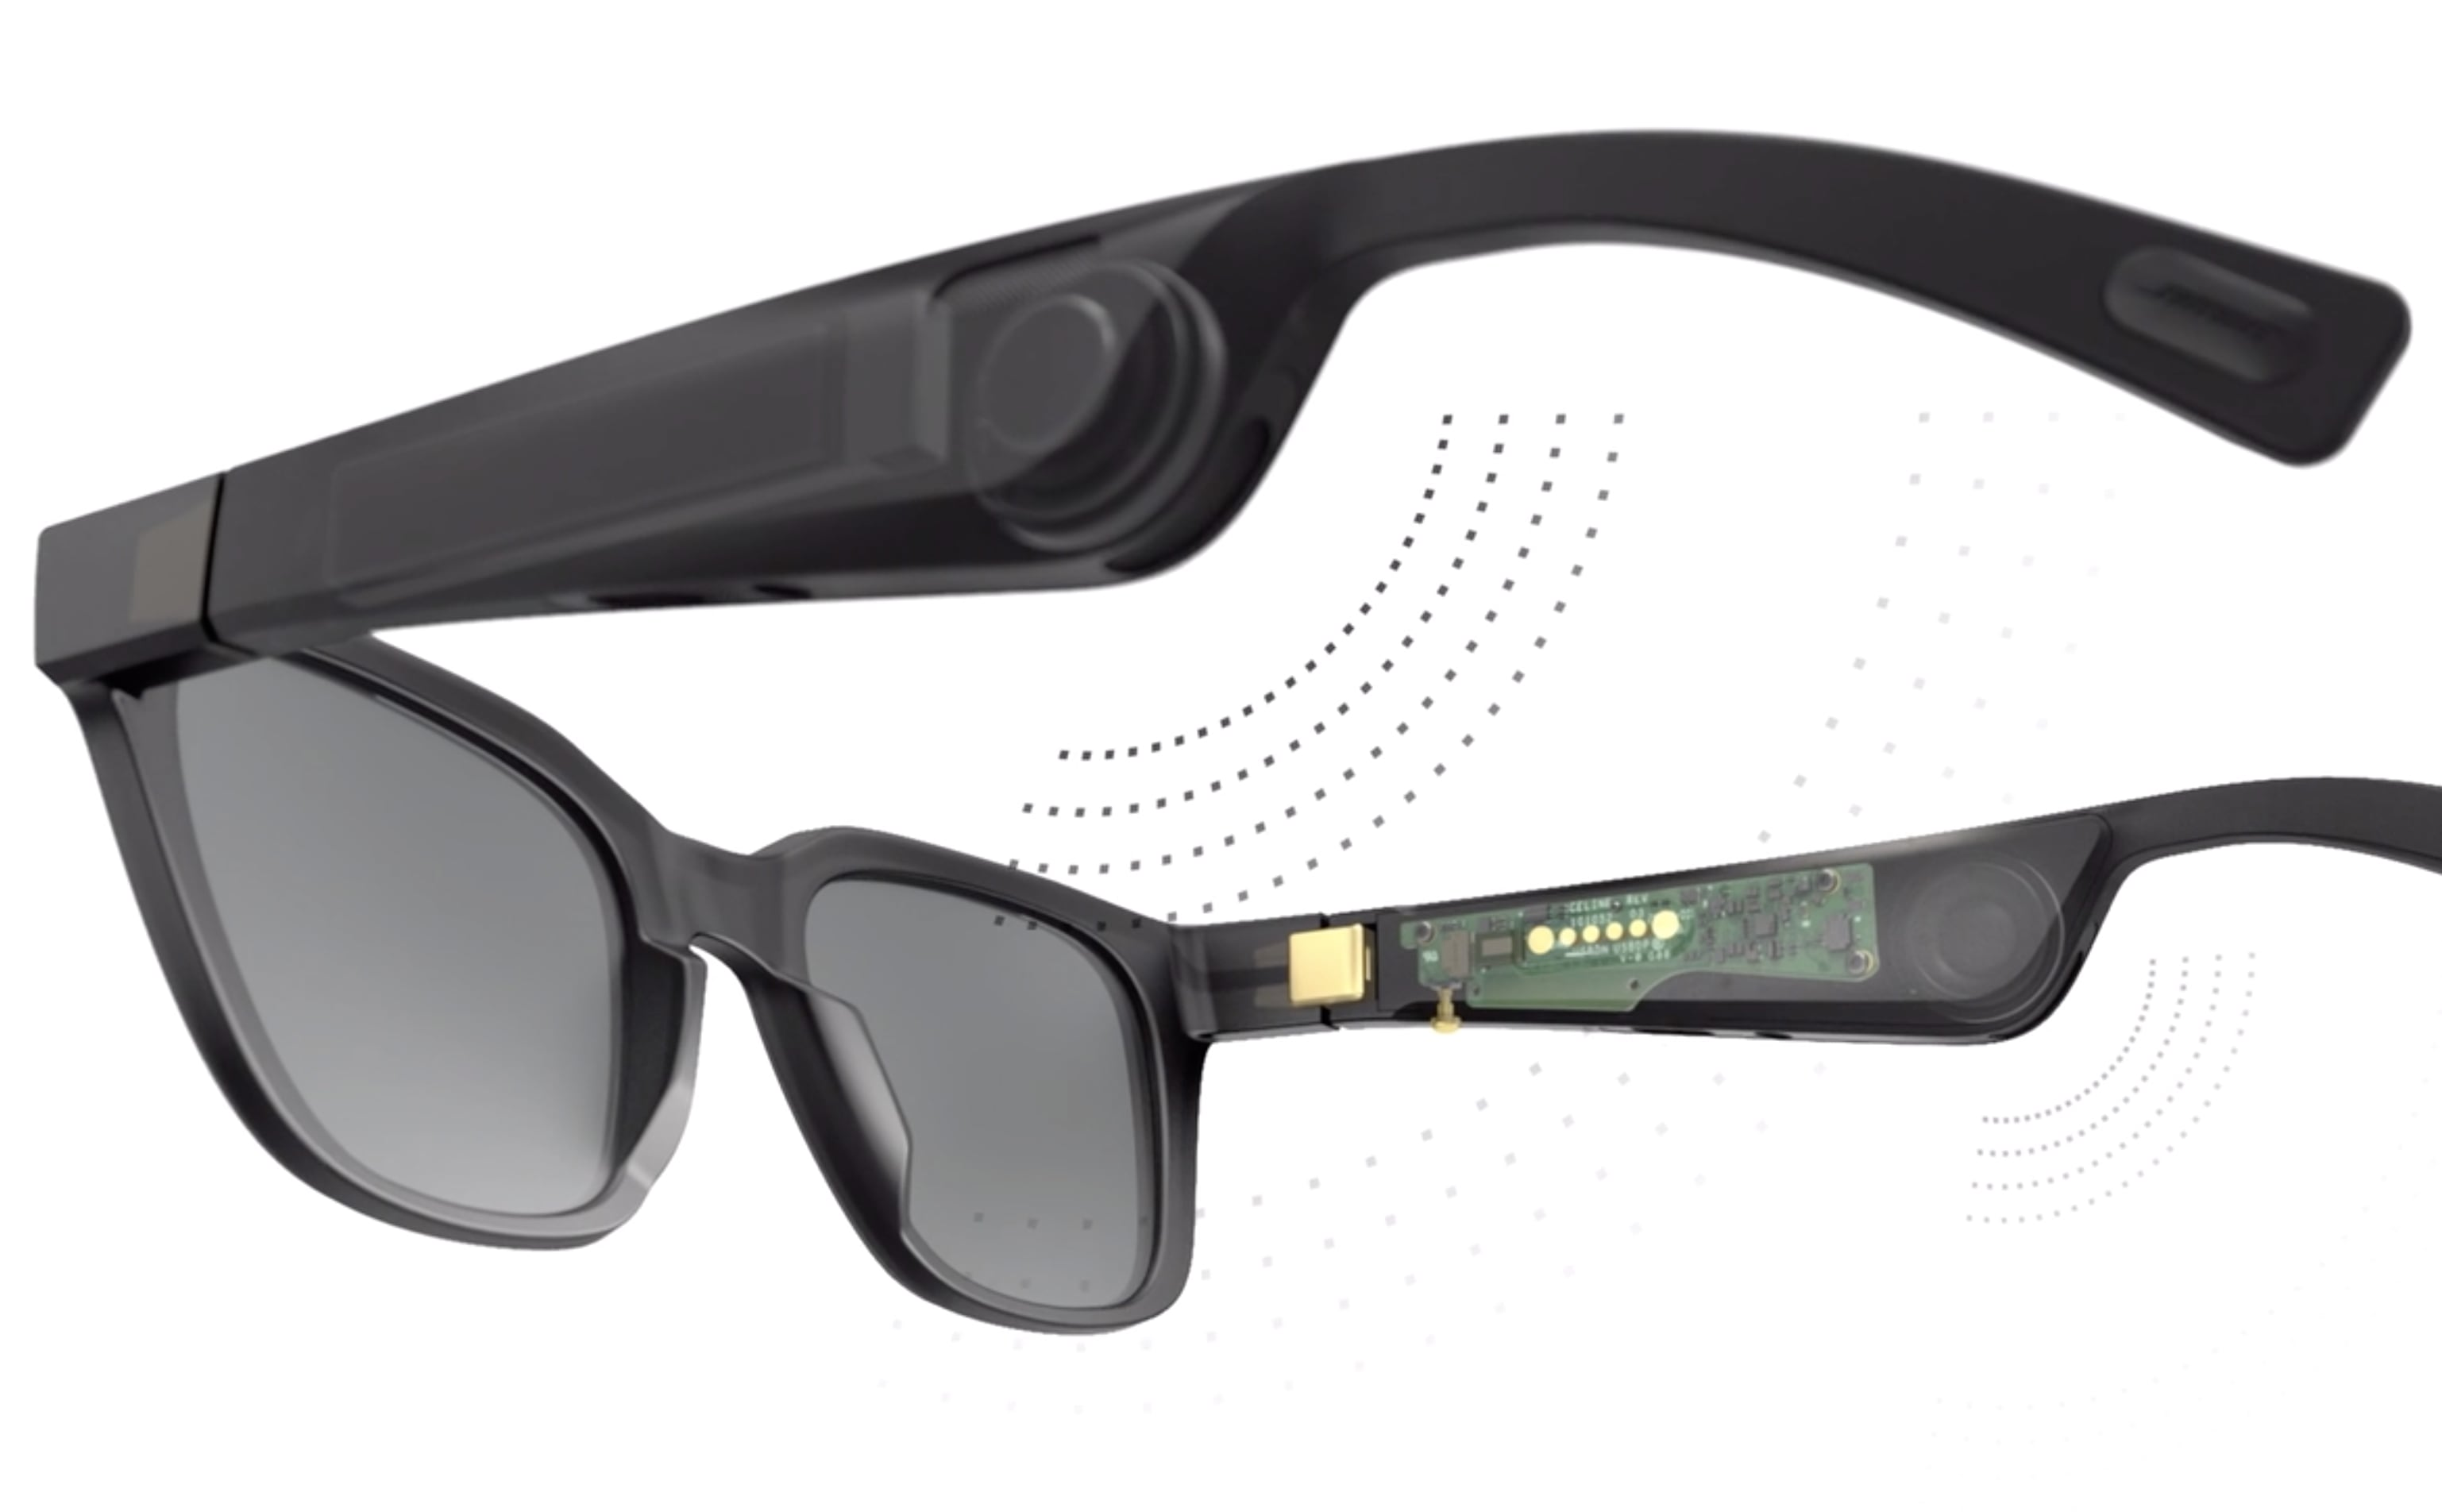 60865c24624 The innovation of these audio augmented reality sunglasses is a game  changer! I am so excited to have a pair of these glasses and will be using  ...